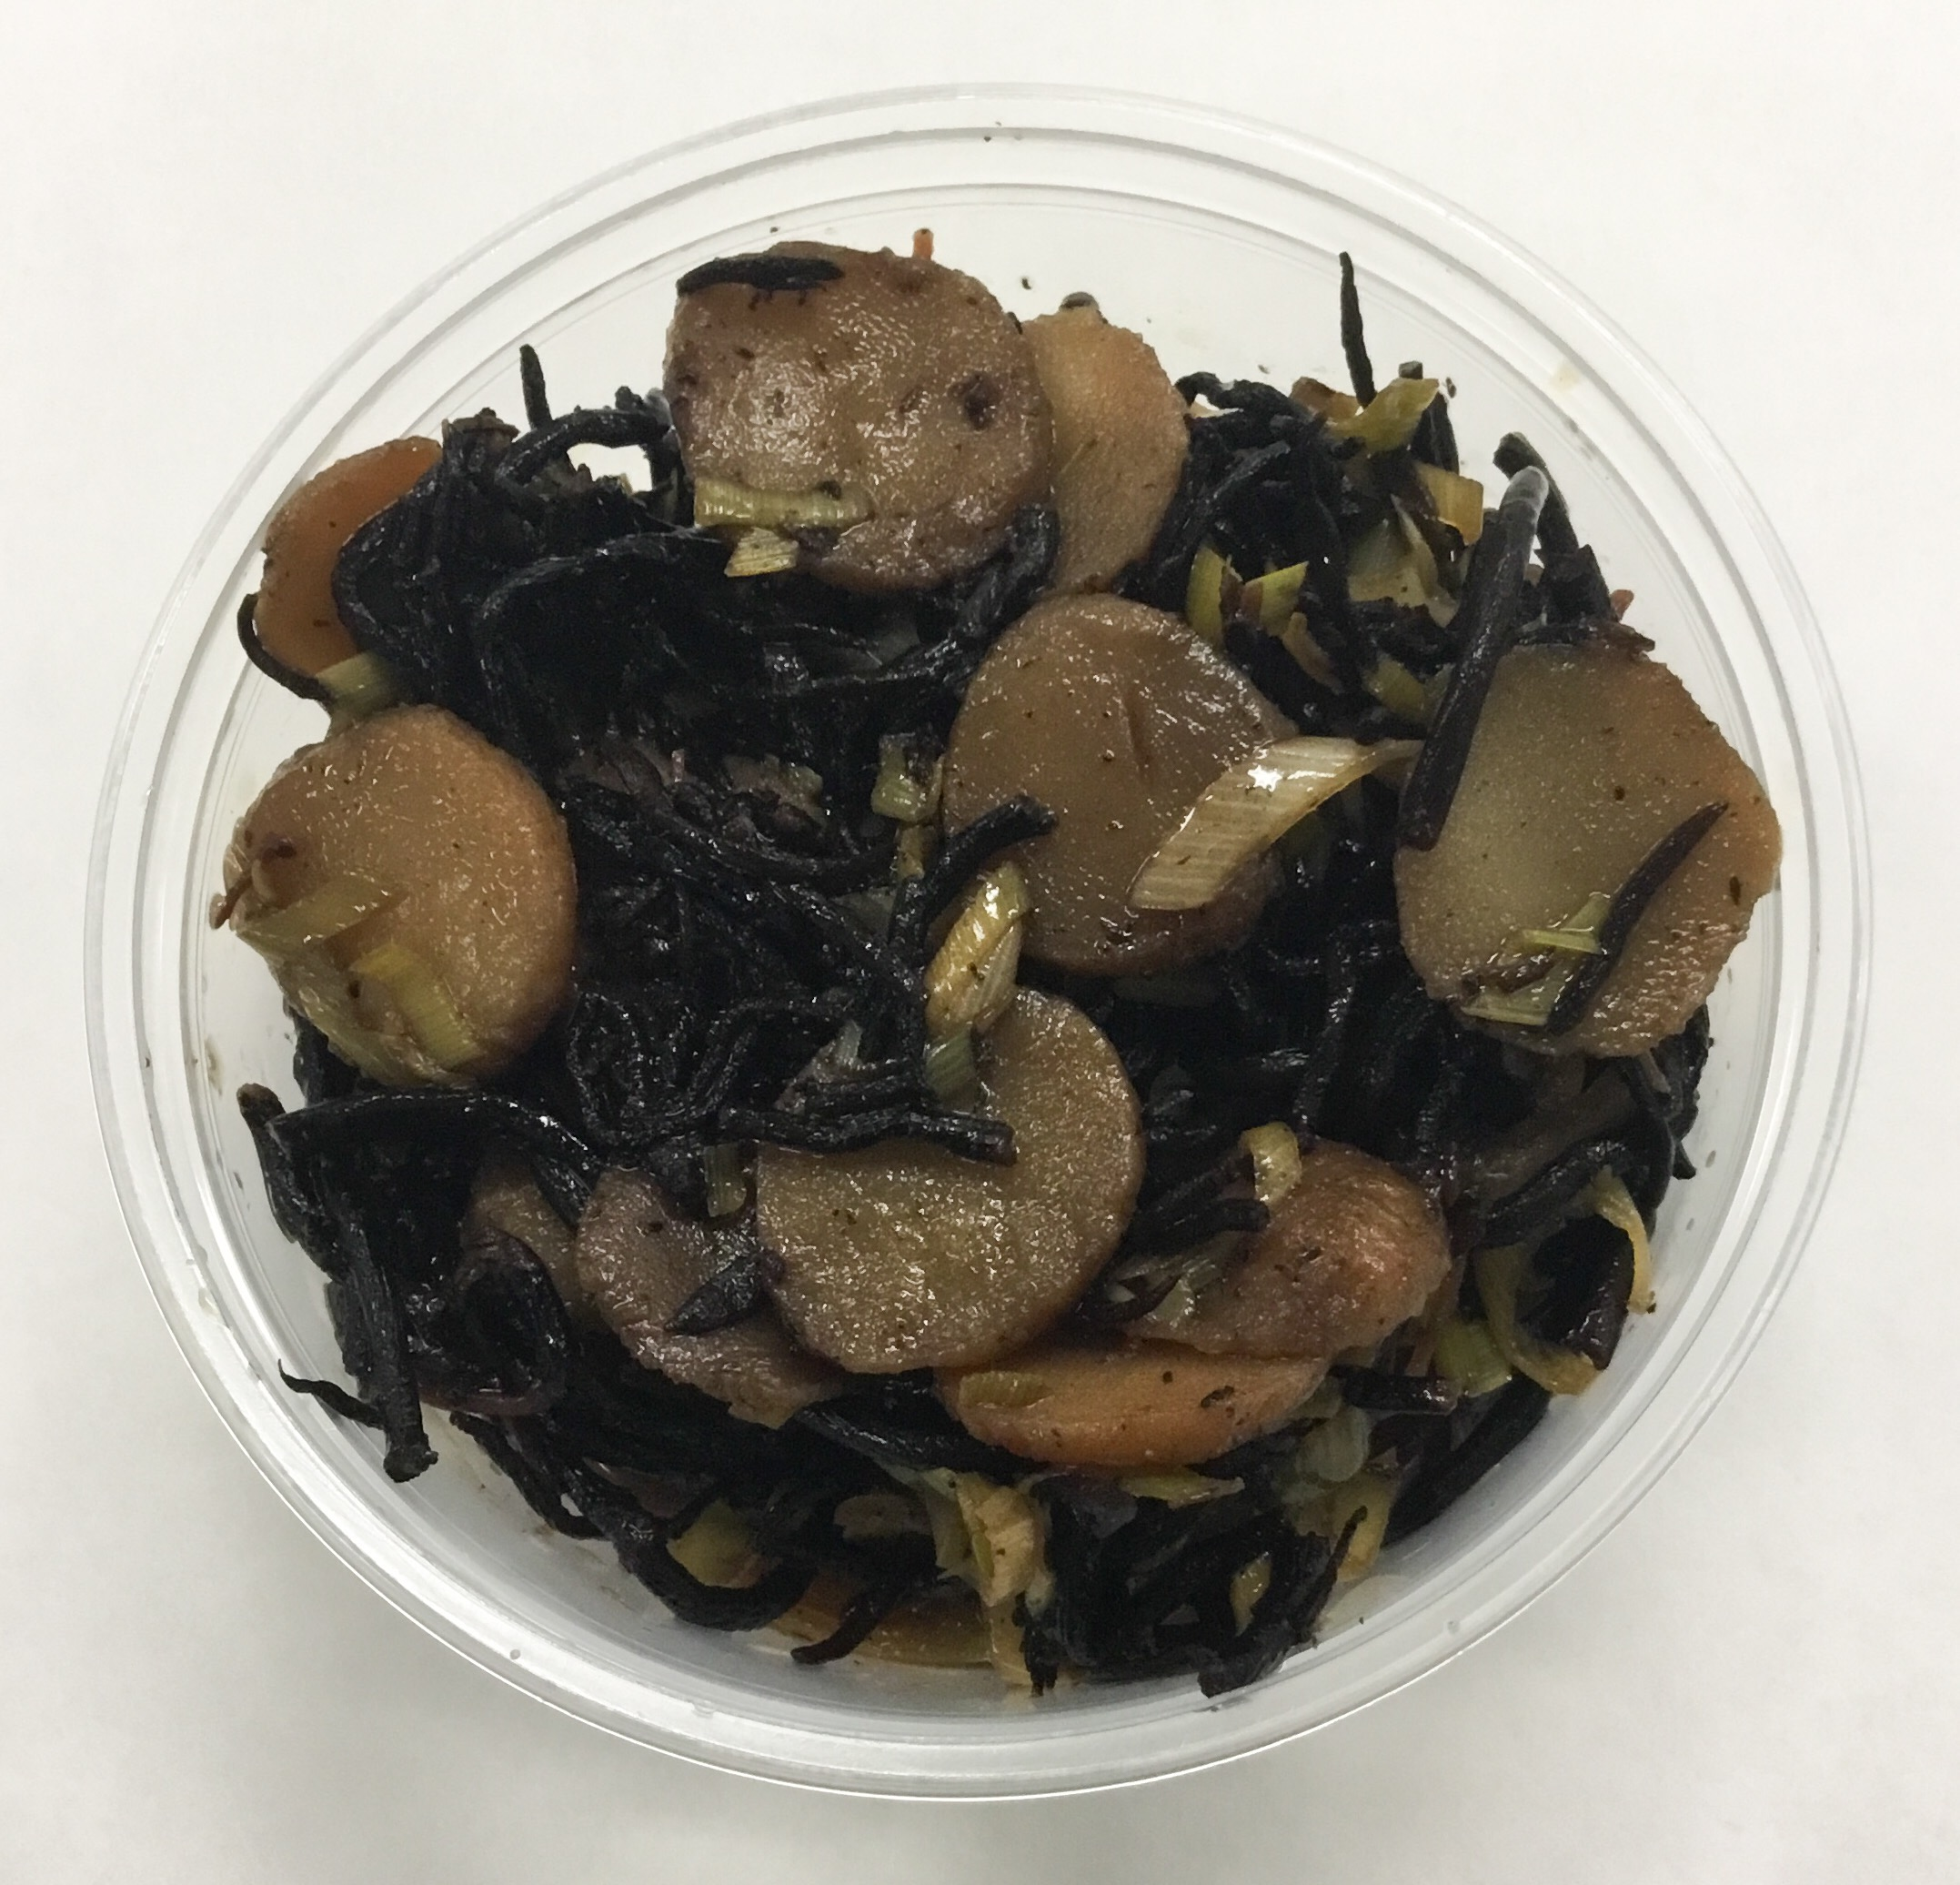 Hiziki (seaweed),. water chestnuts, leeks and tamari.